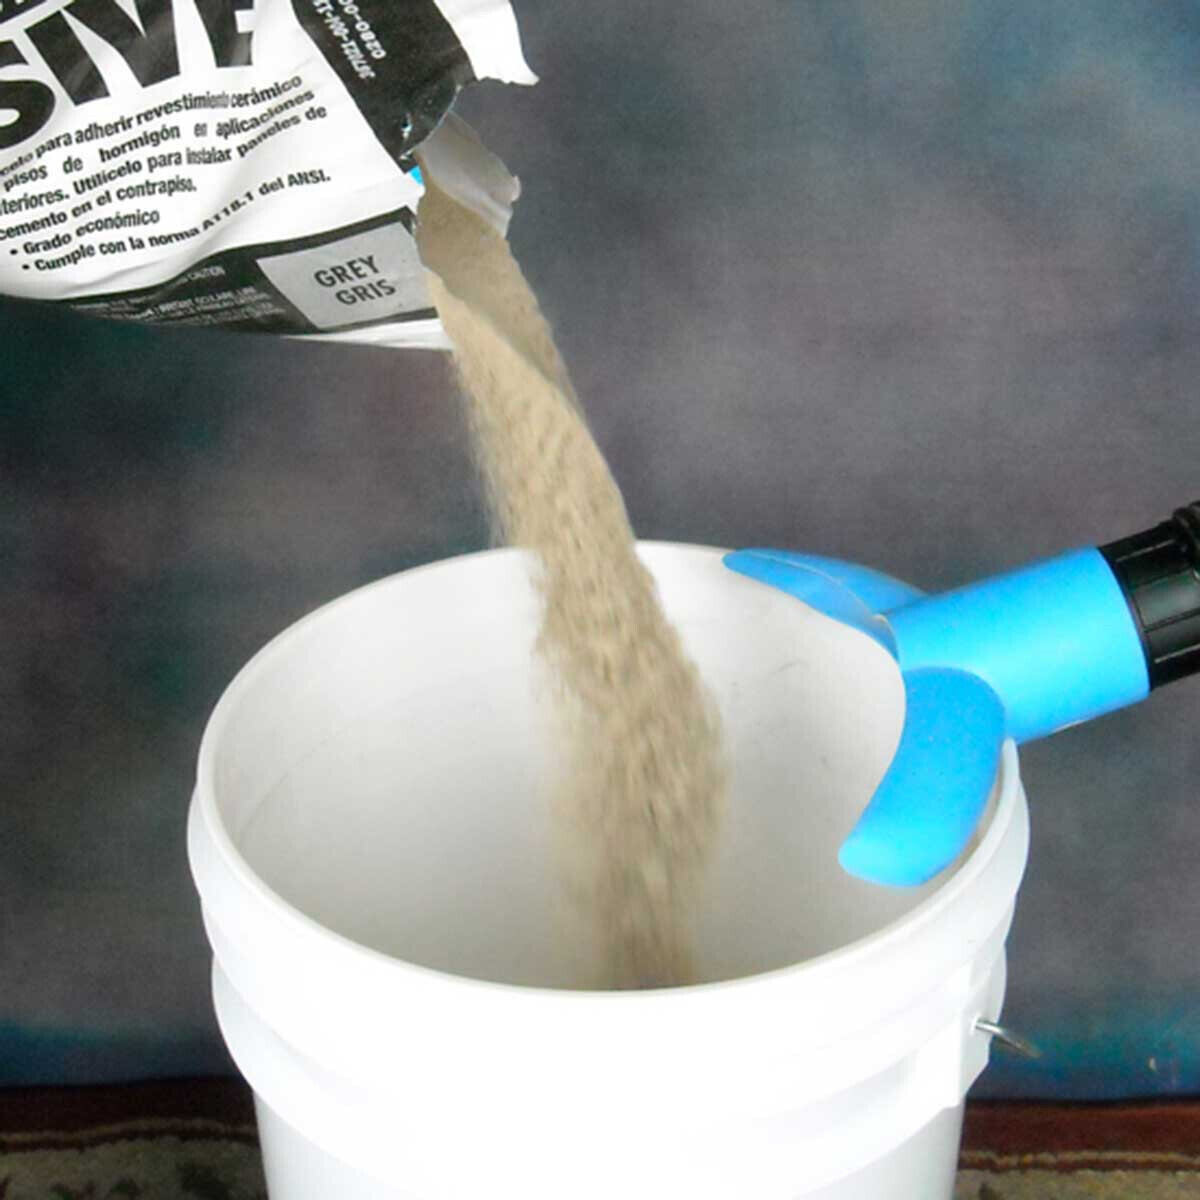 Eliminate dust from mixing mortar and grout in buckets, The WaleTale will not allow dust to escape the top of the bucket